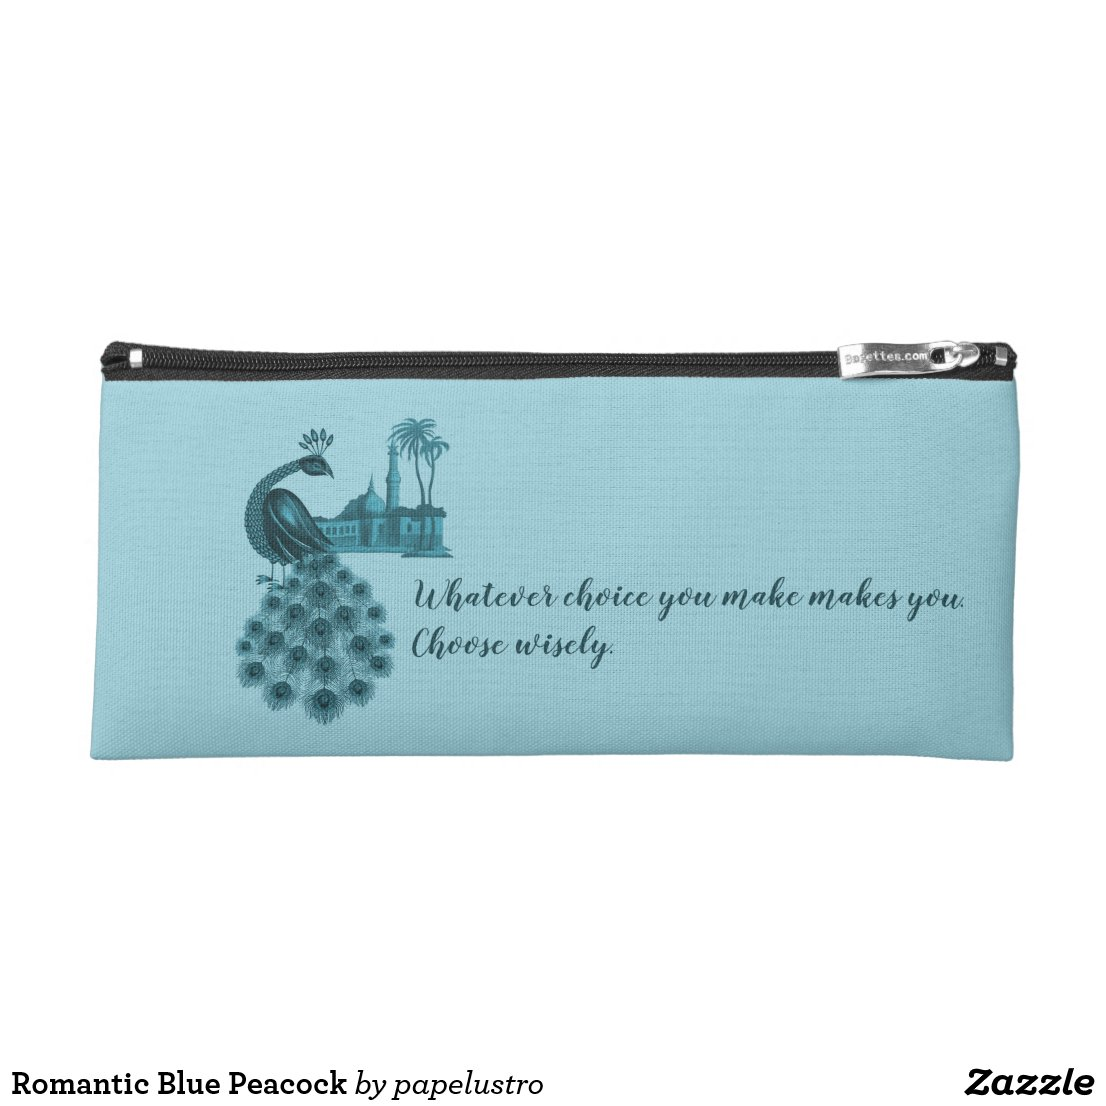 Romantic Blue Peacock Pencil Case